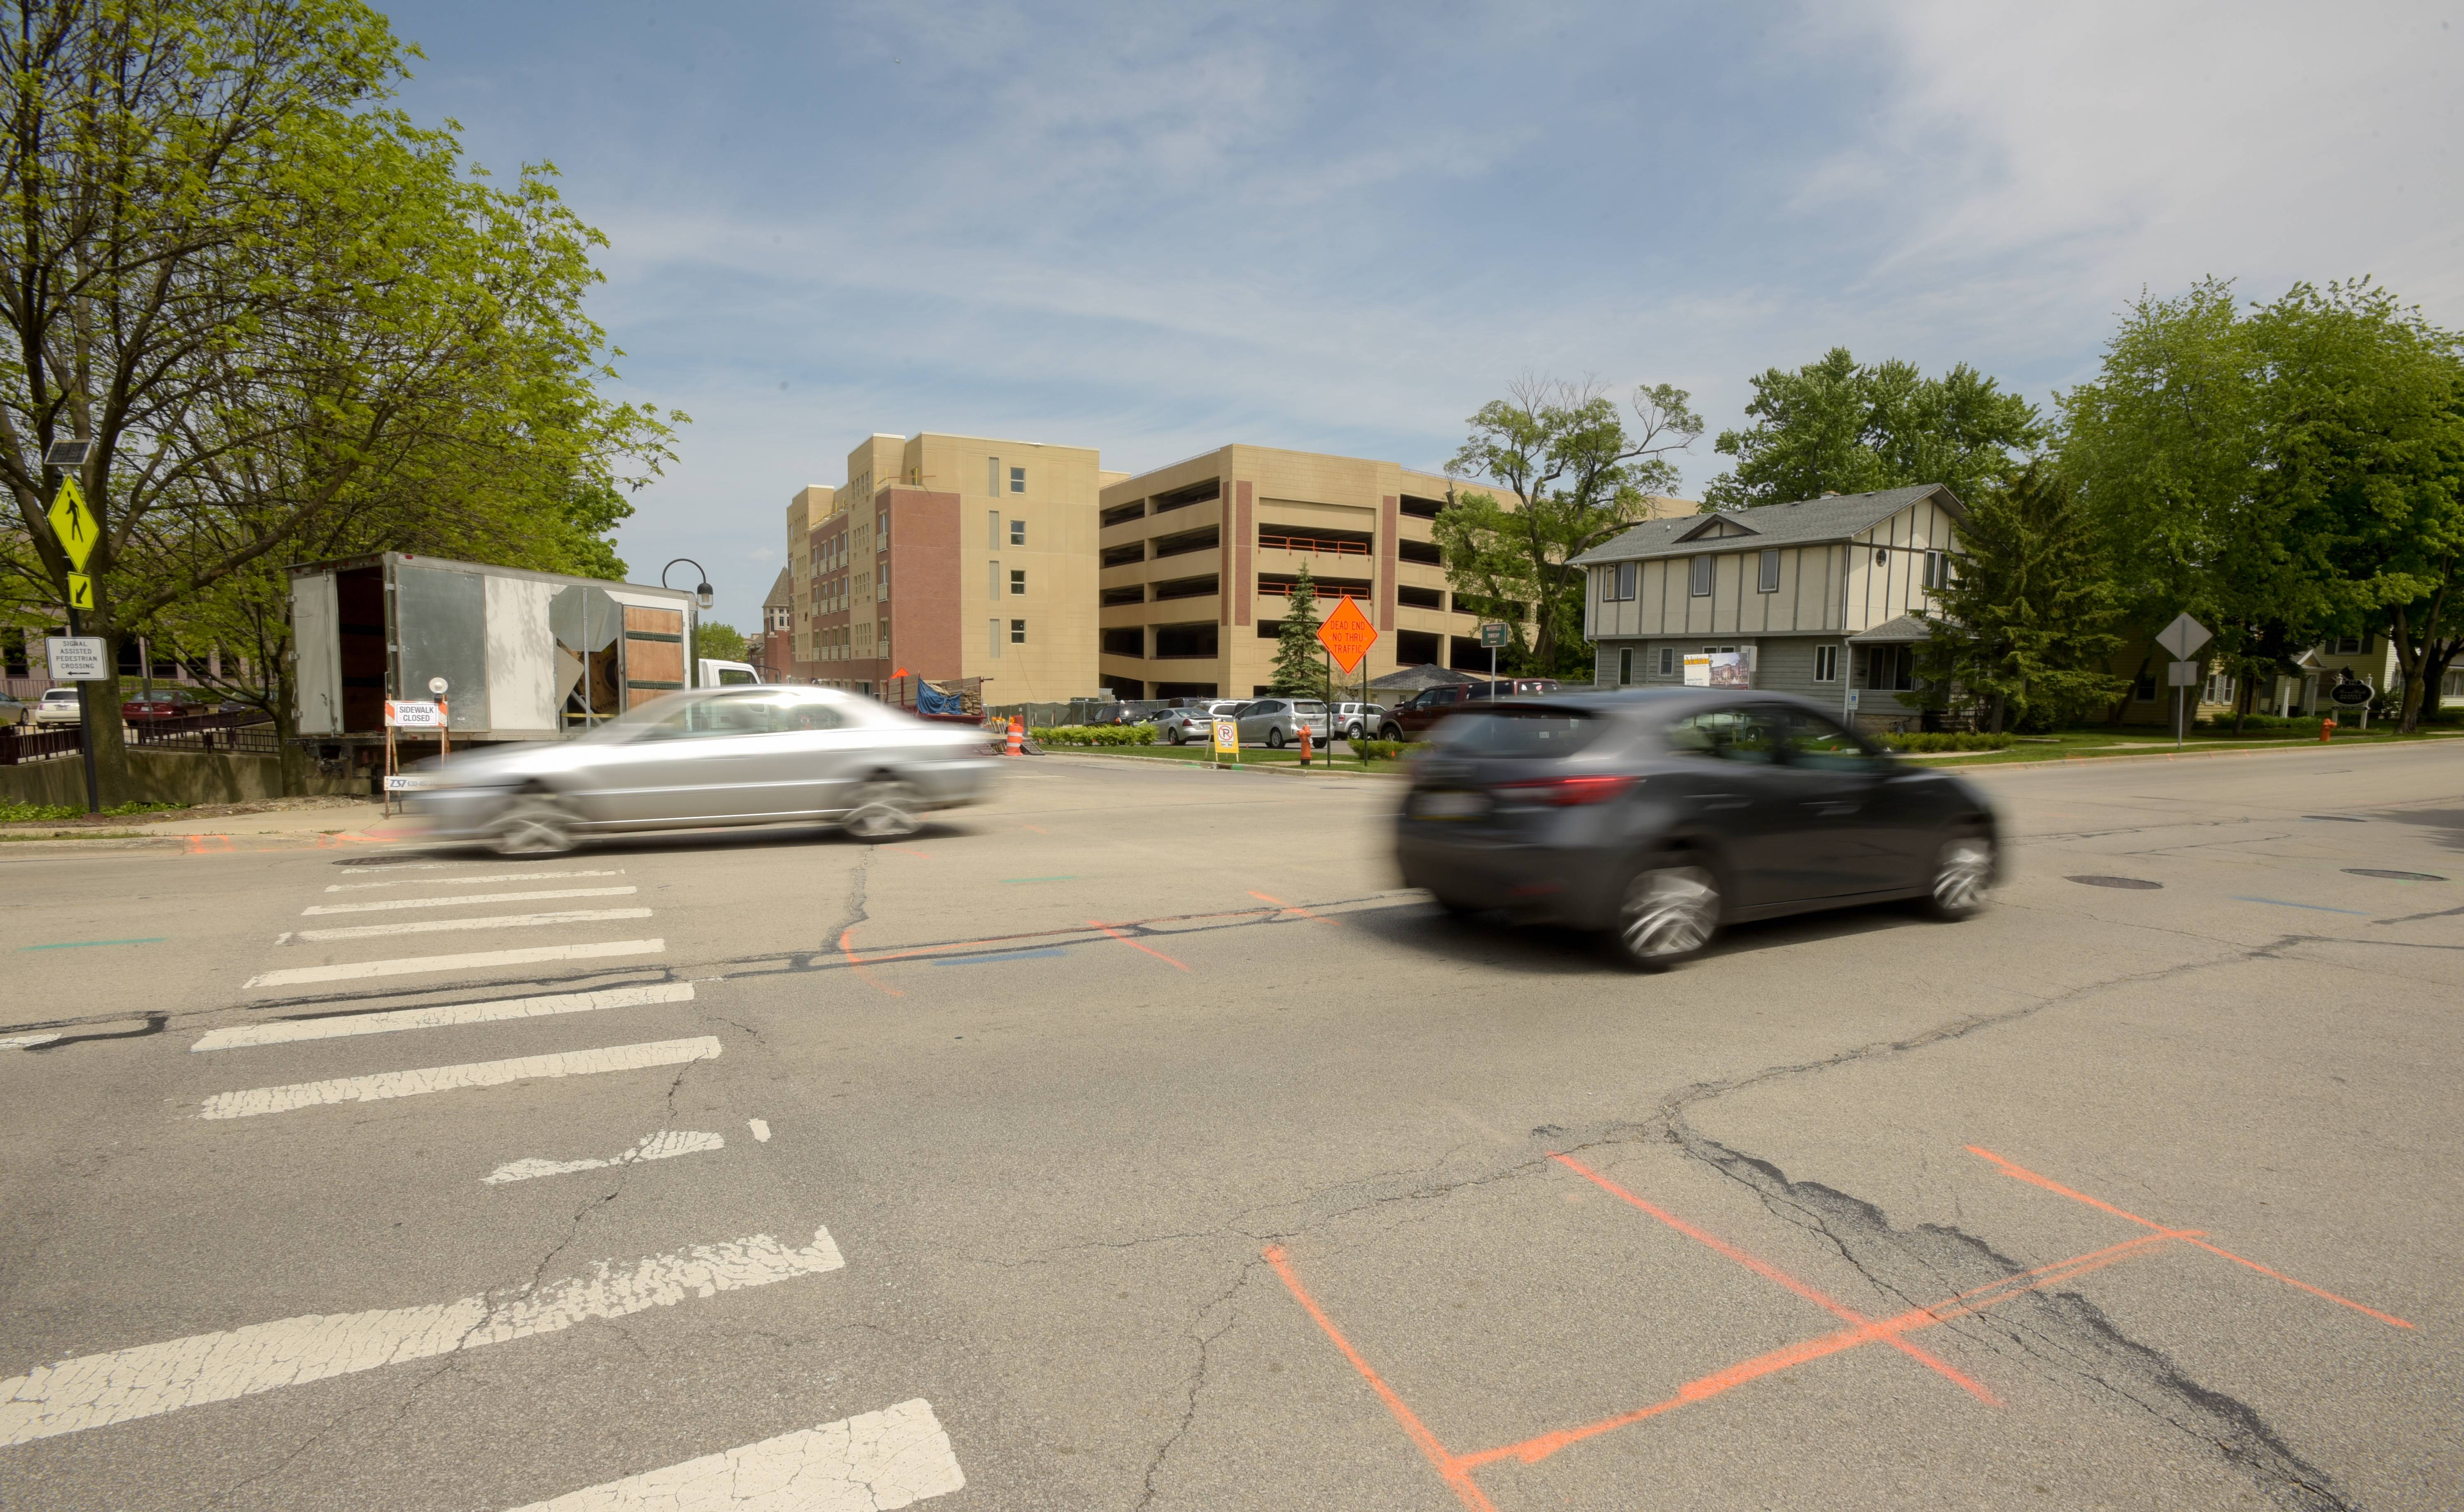 A new traffic signal will be installed at the intersection of Aurora Avenue and Webster Street in downtown Naperville near a hotel, shops and restaurants set to open this fall at the Water Street District.